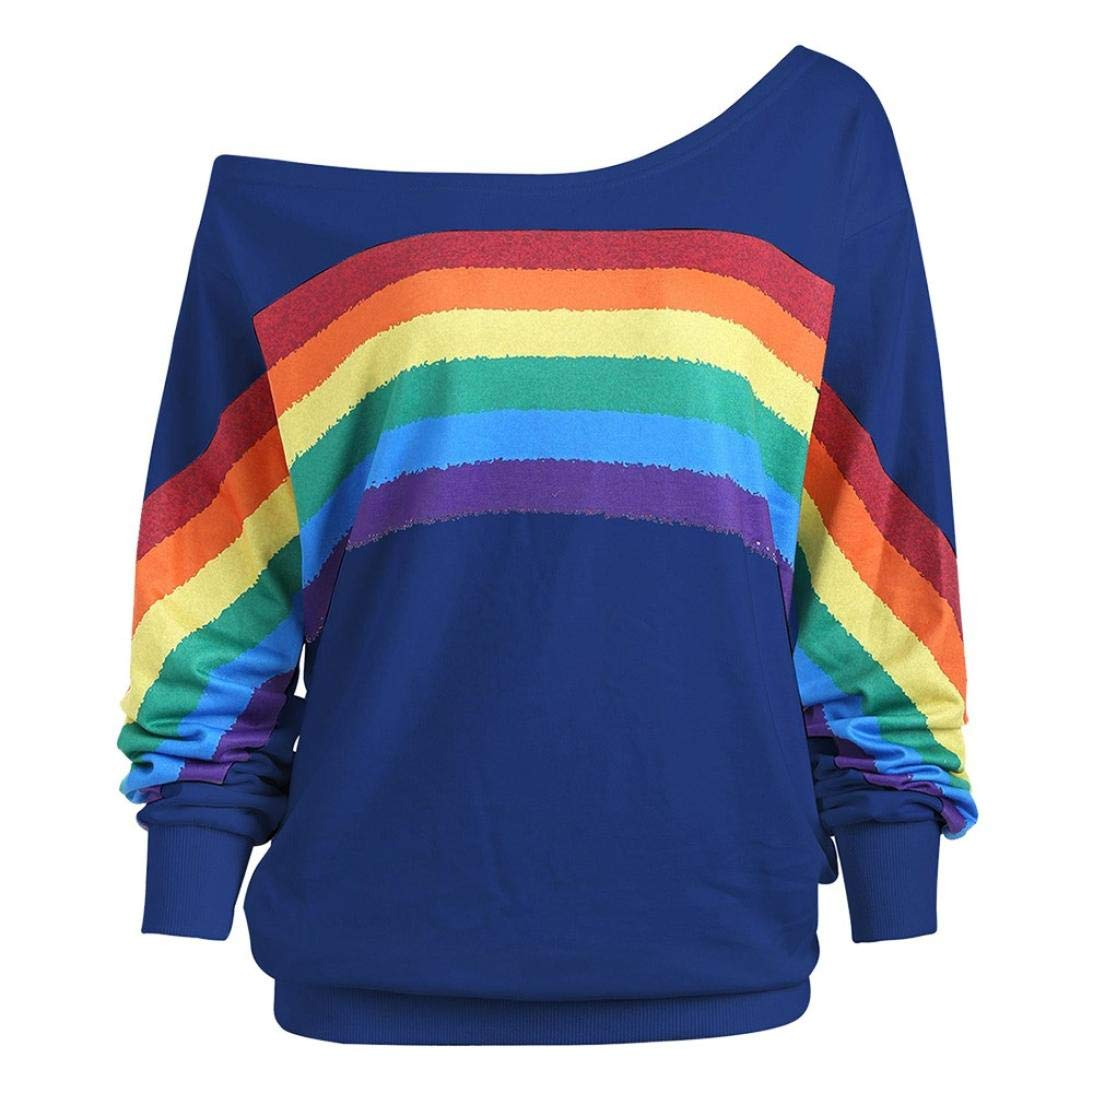 Clearance ! TOOPOOT Women's Rainbow Pullover Autumn Winter Warm Apparel Hooded Sweatshirt Blouse Short Tops